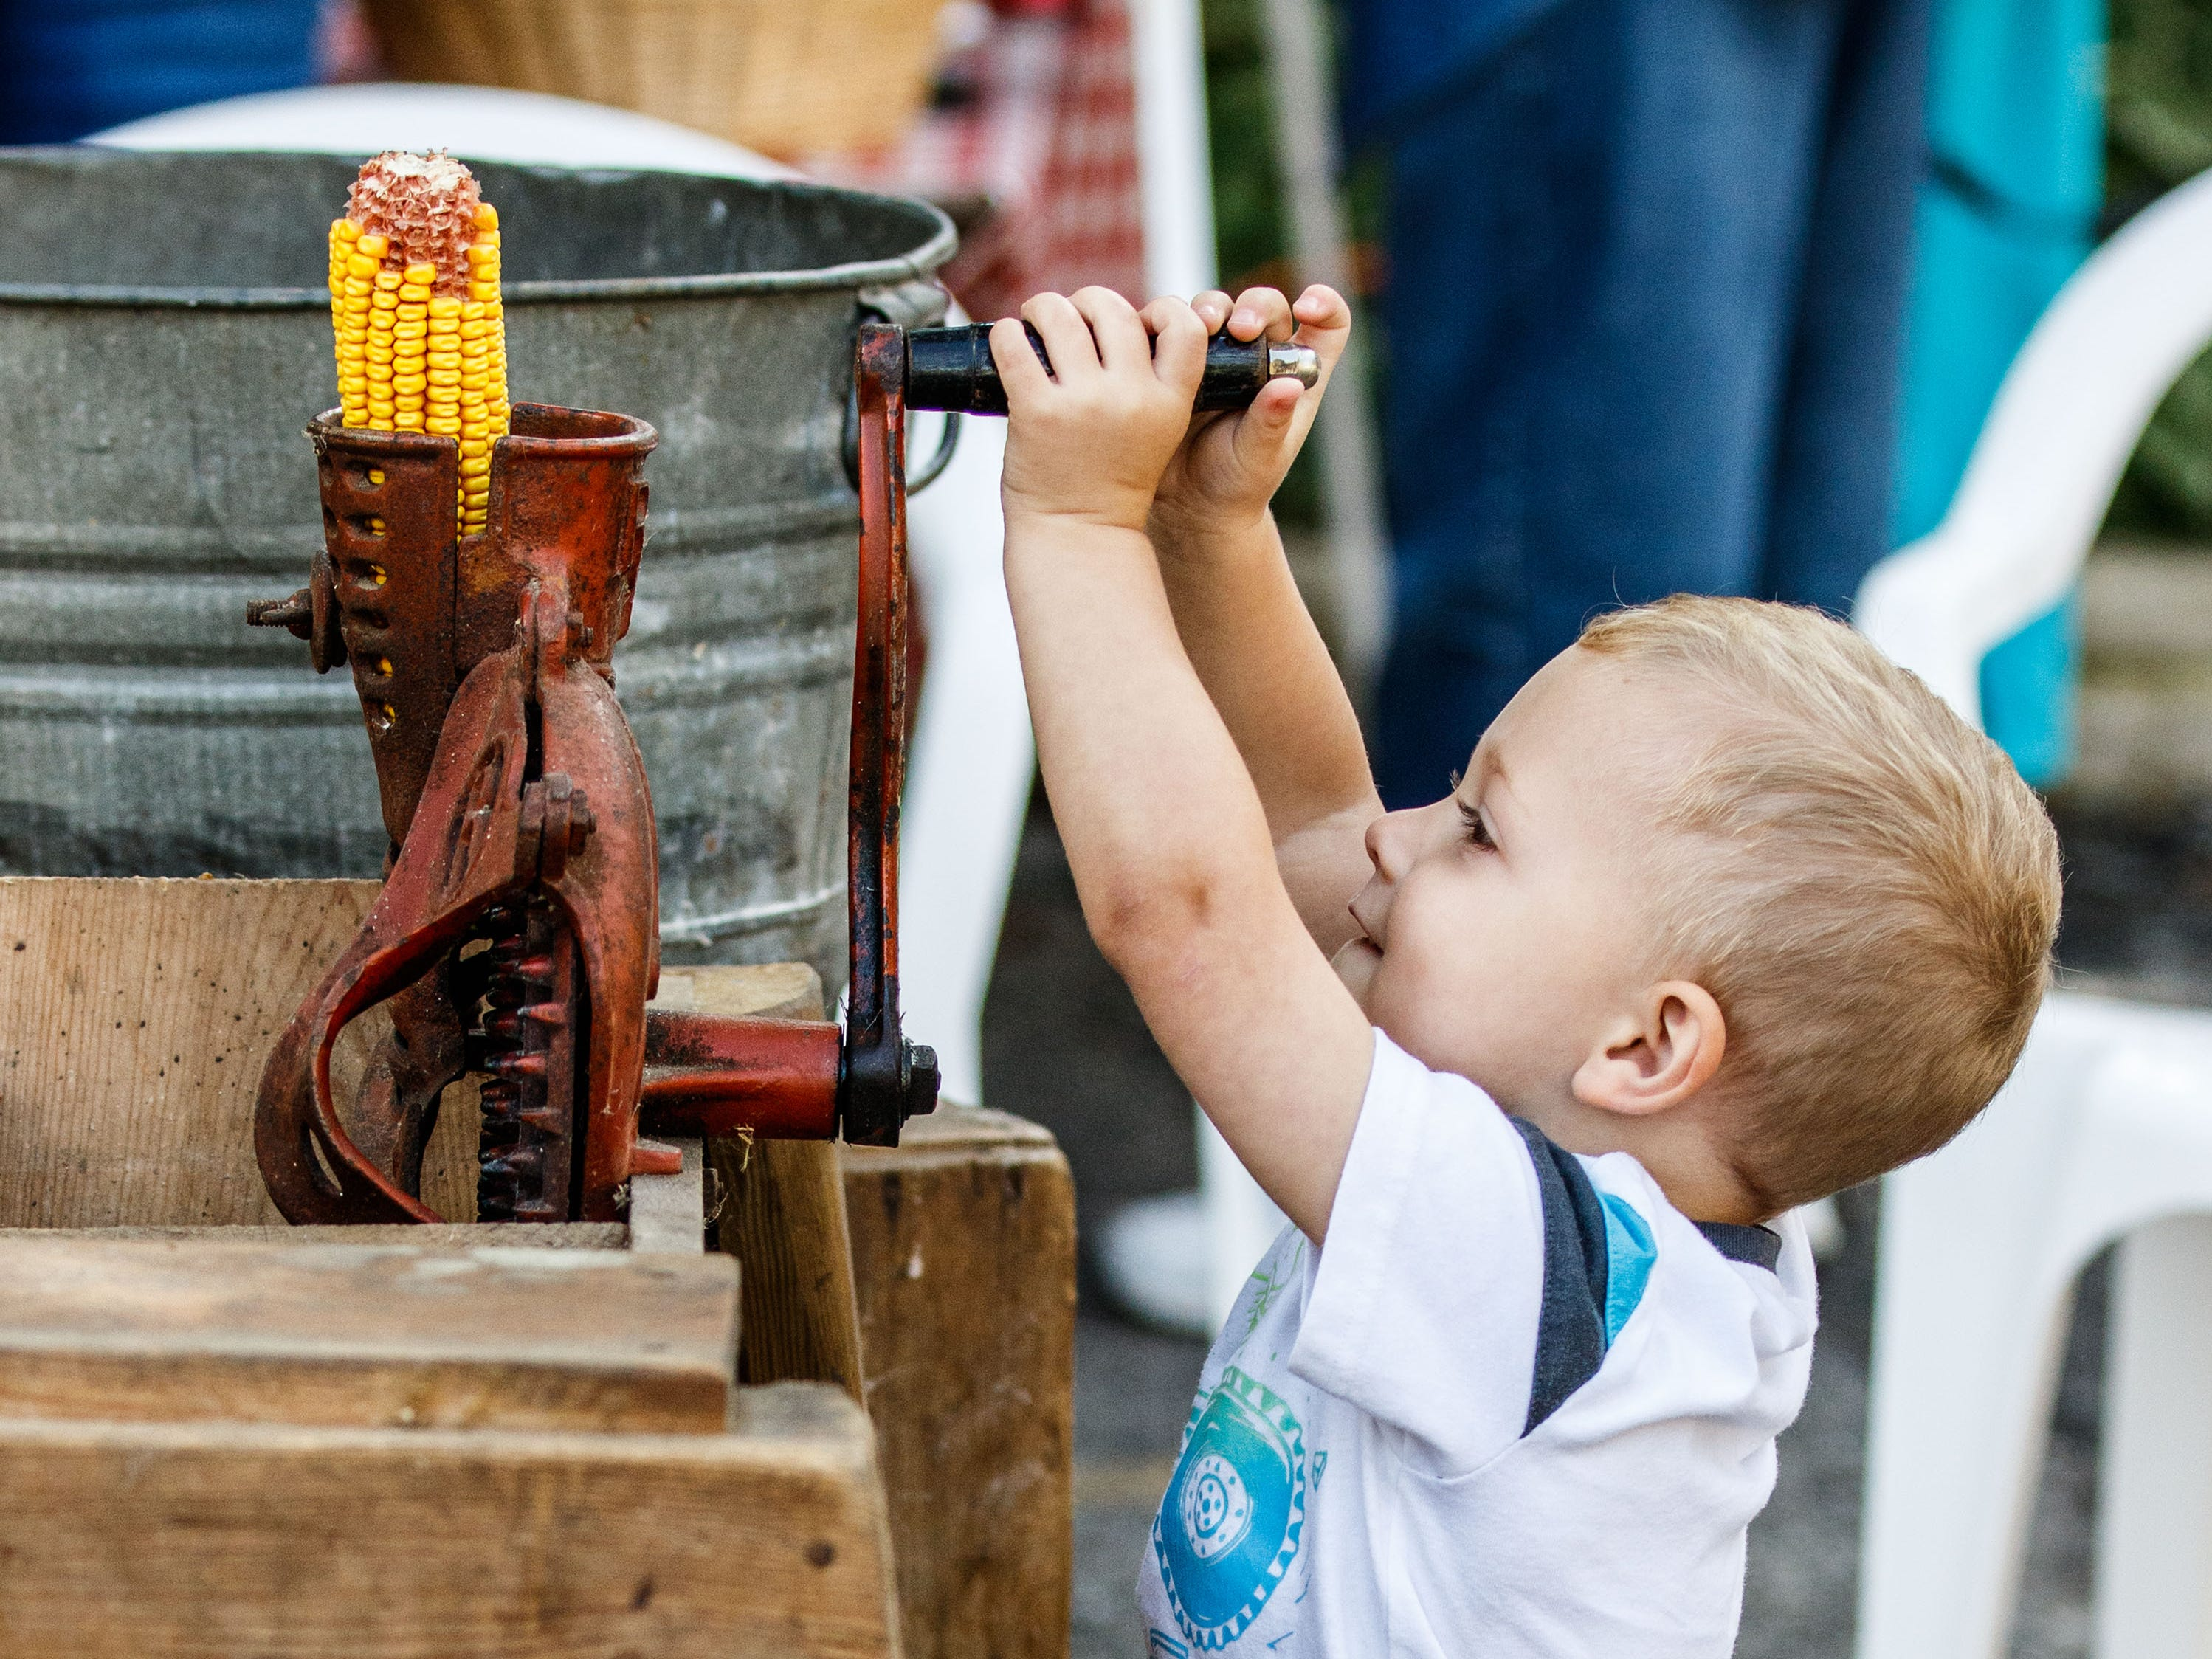 Two-year-old Abe Heard of Pewaukee tries out a hand-cranked corn sheller during Harvest Fest at the Clark House Museum in Pewaukee on Sunday, Sept. 9, 2018. The annual event features hands-on activities and demonstrations of blacksmith, carving, butter churning, corn shelling, square dancing and more.